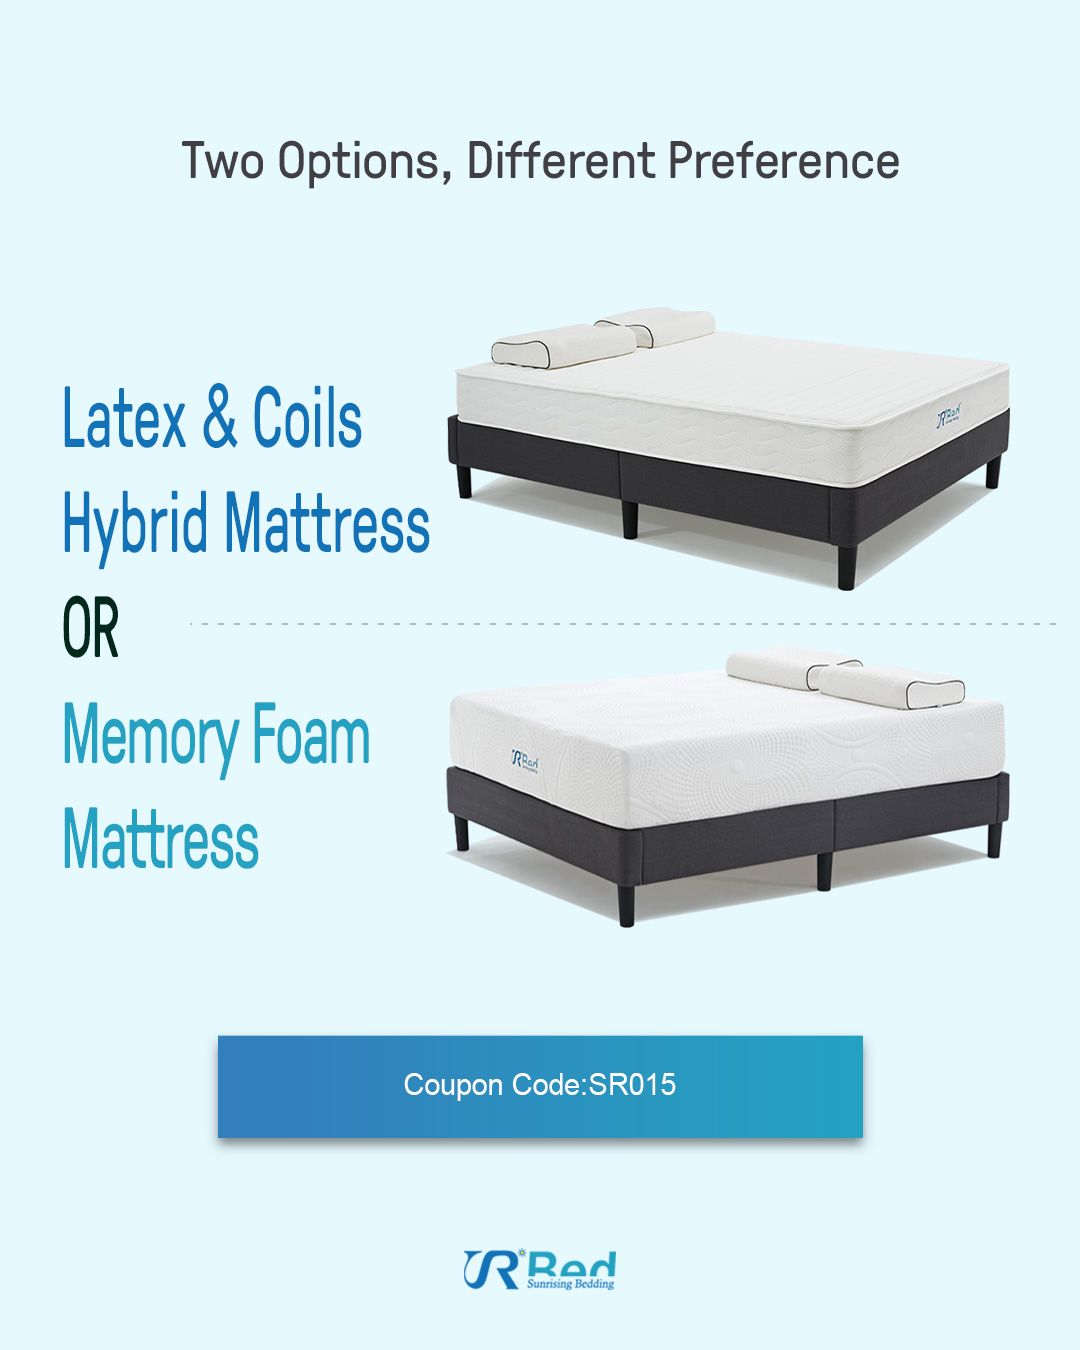 Sunrising Bedding Best Comfortable And Affordable Mattress Choices On Sunrising Bedding Mattress Foam Mattress Affordable Mattress